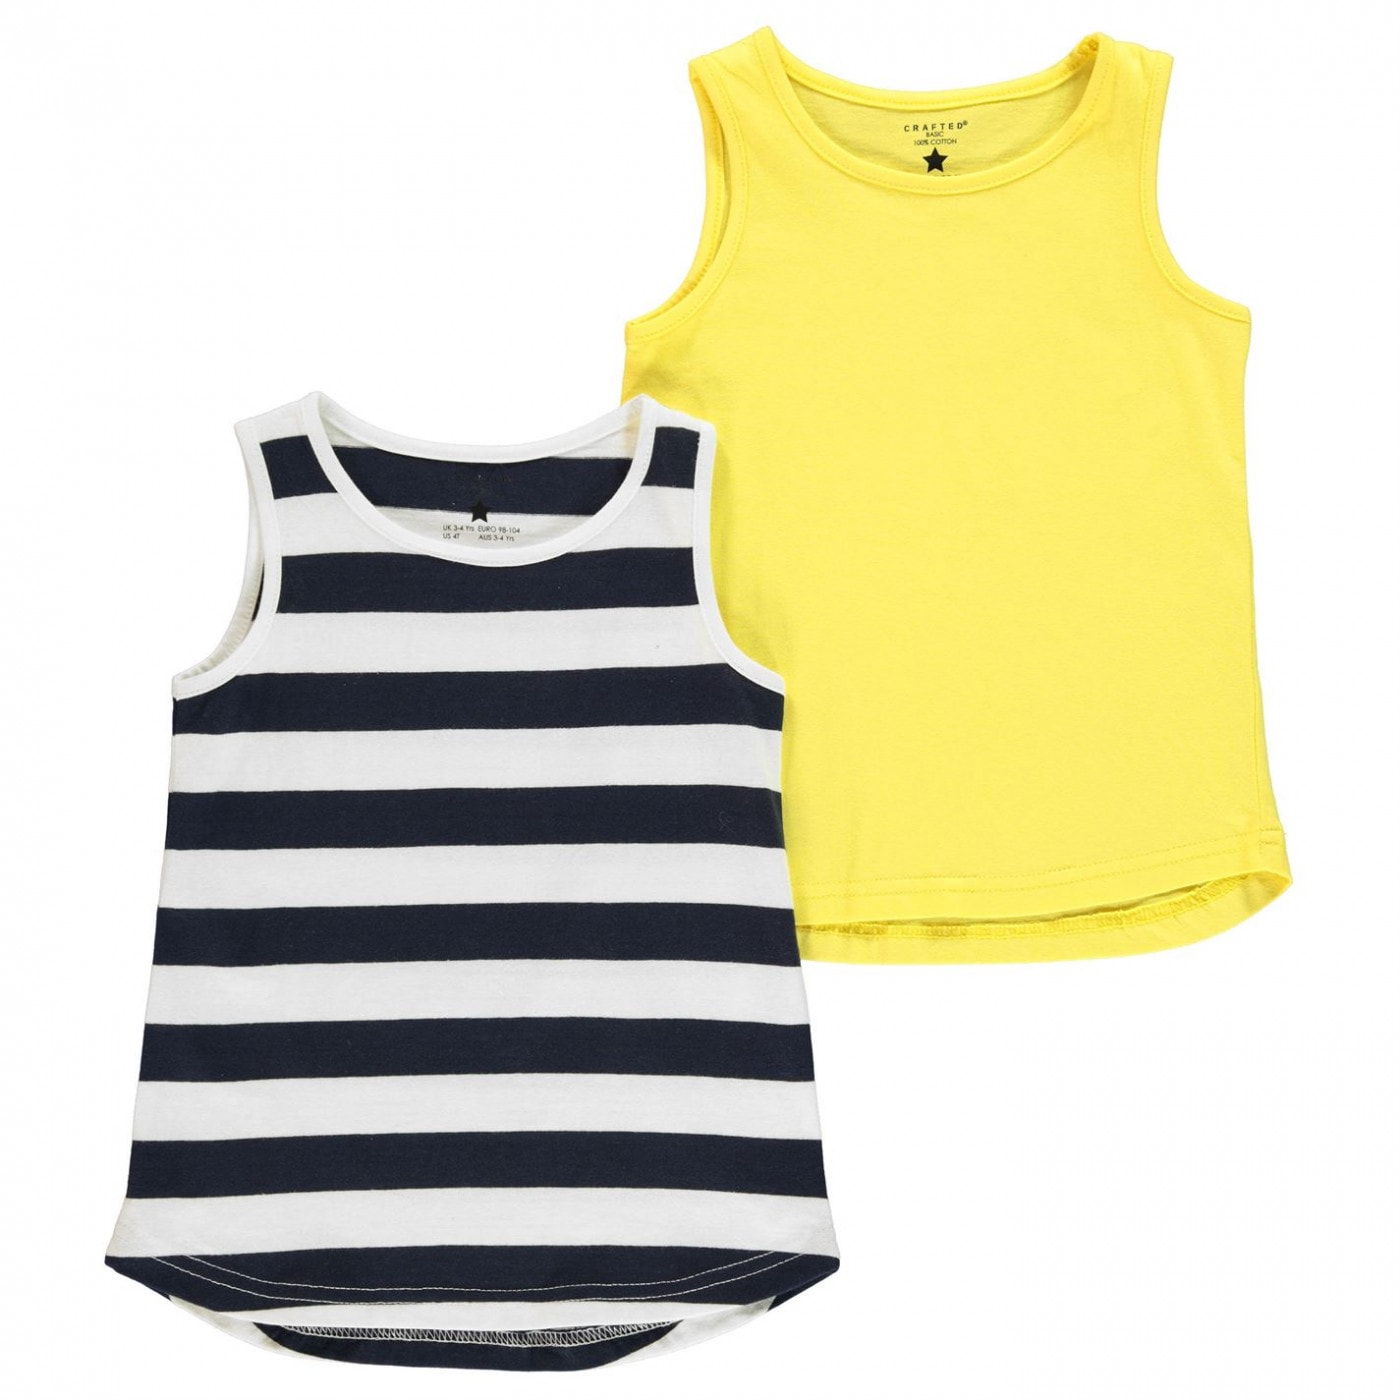 Crafted 2 Piece Jersey Vests Infant Girls